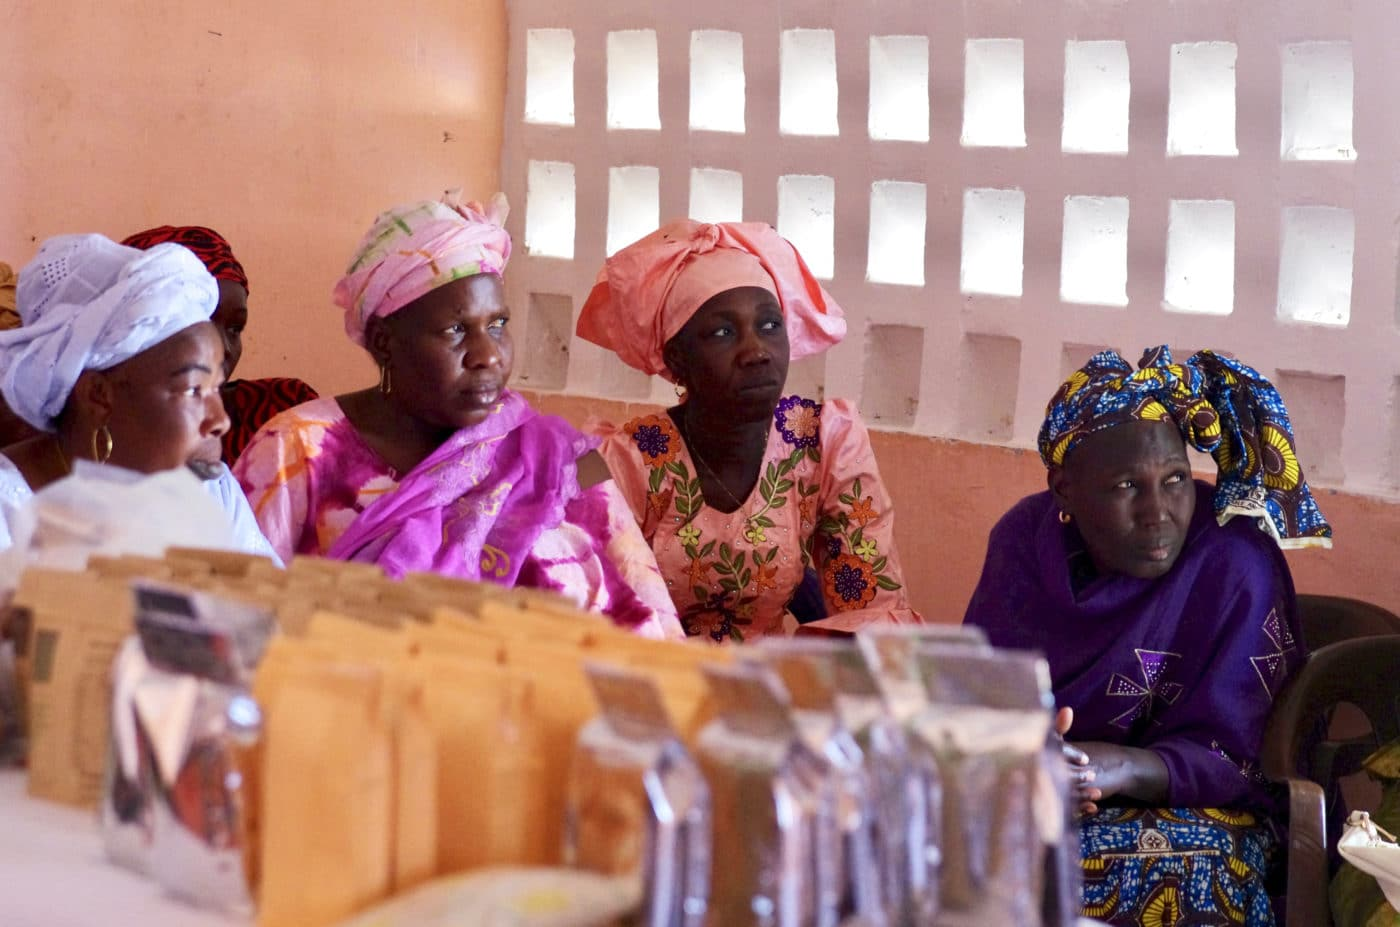 Women at a training session in Senegal.